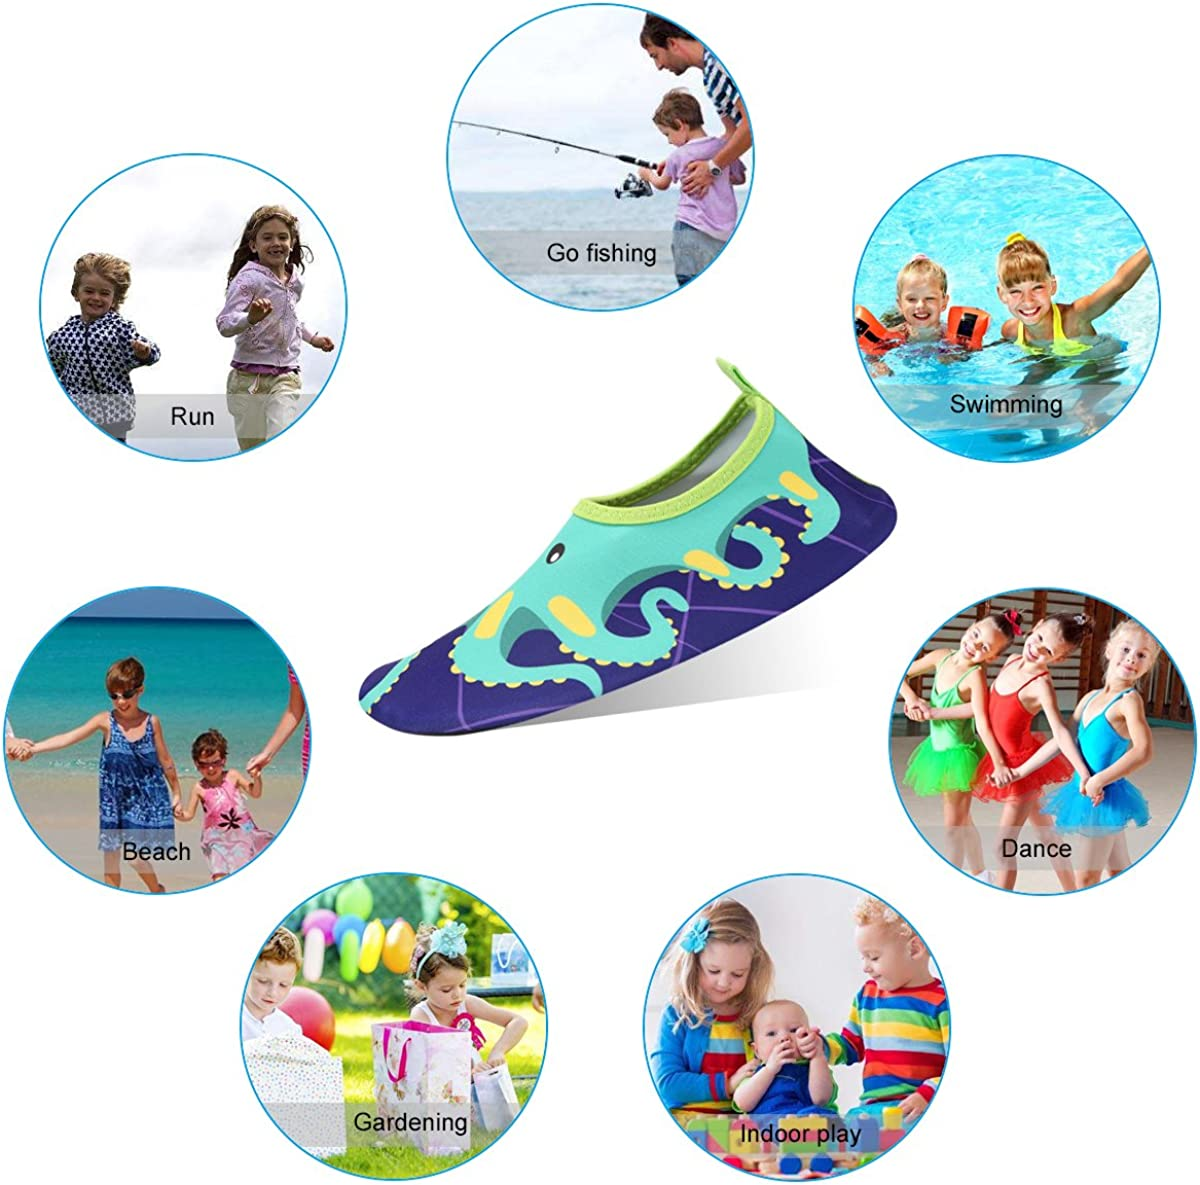 Boys Girls Quick Drying Aquatic Beach Shoes Barefoot Slip On Aqua Socks KUNSHOP Kids Water Shoes